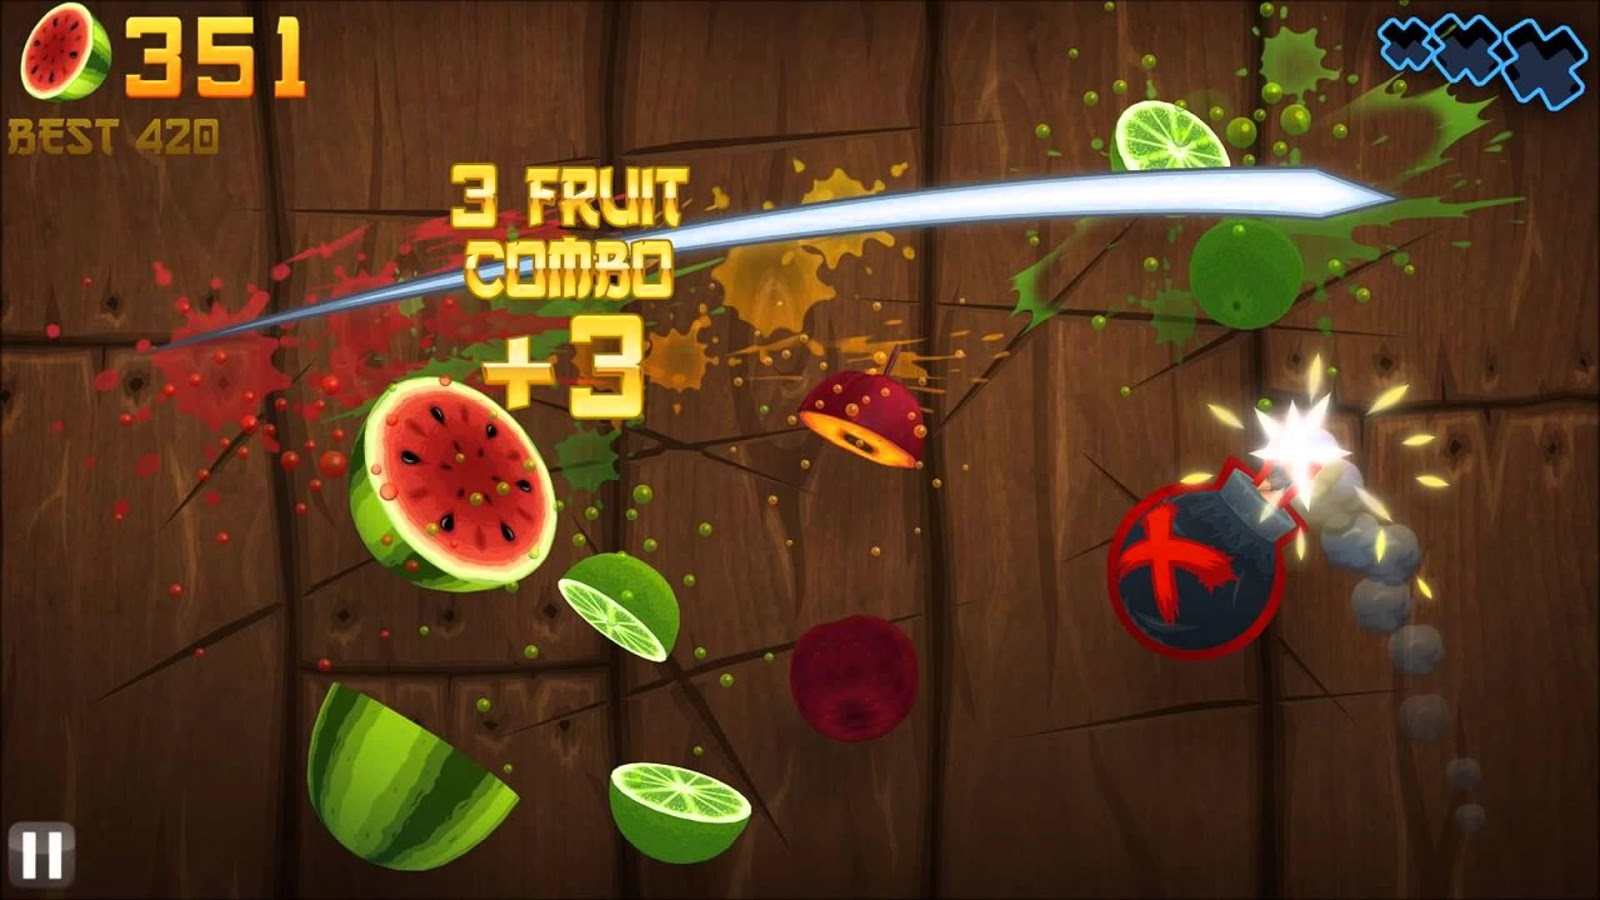 he Fruit Ninja mobile game in all its plant-bisecting goodness